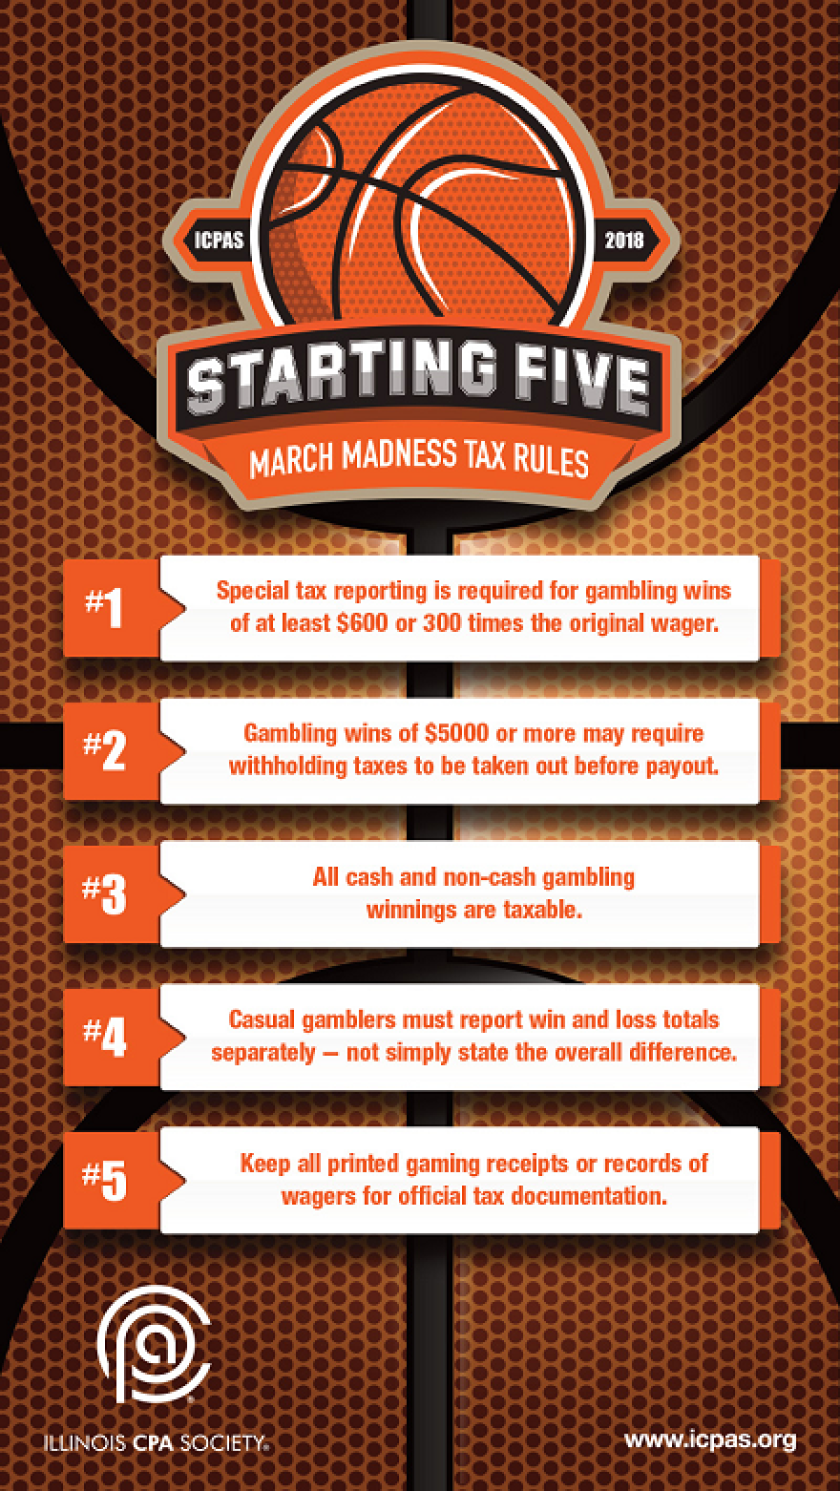 Illinois CPA Society March Madness tax tips